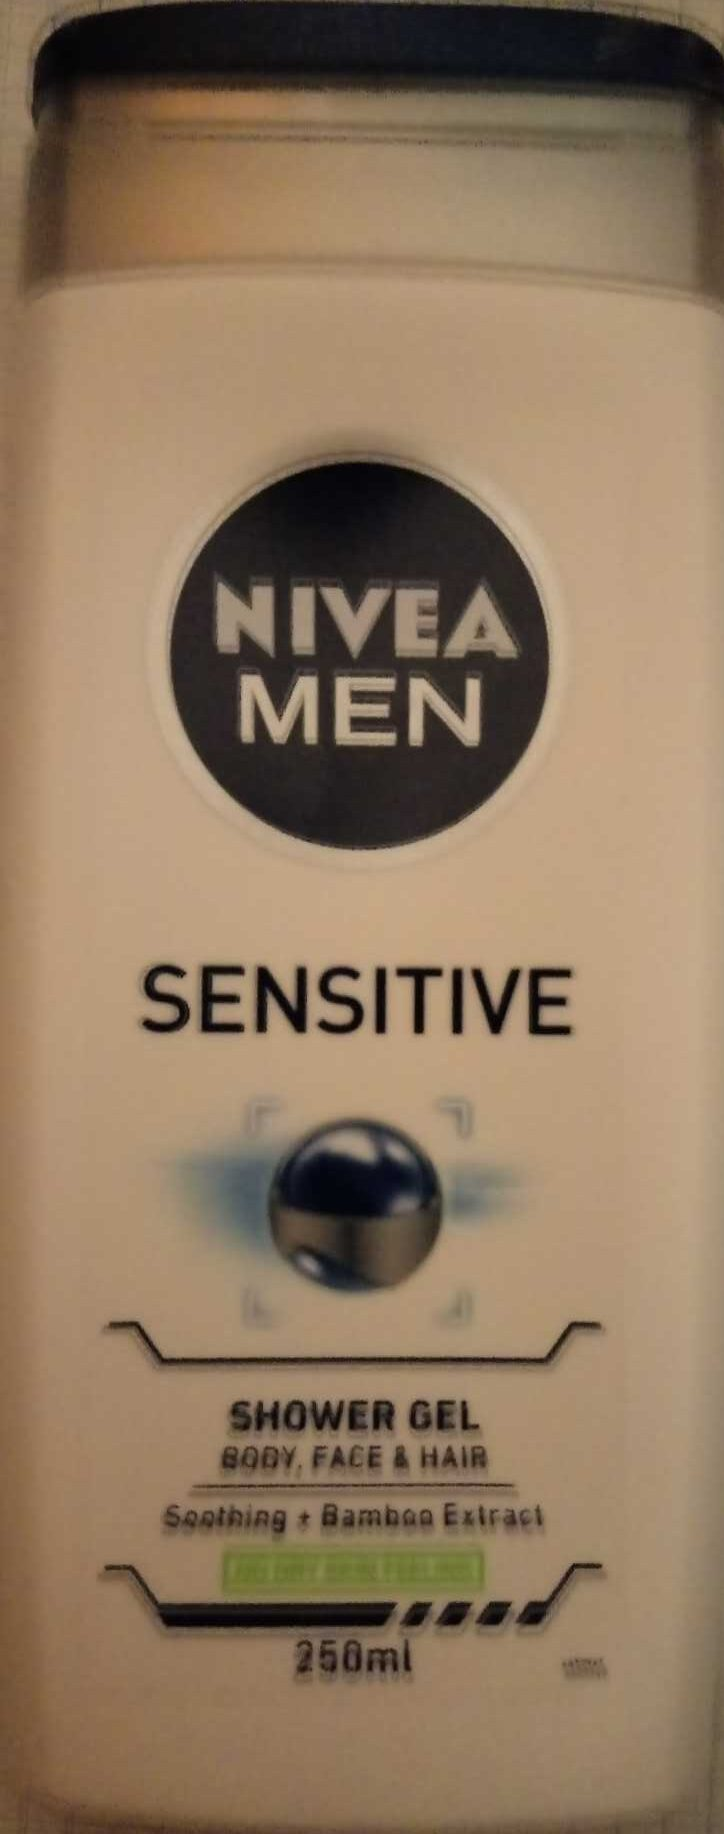 Sensitive Shower Gel Soothing + Bamboo Extract - Product - en